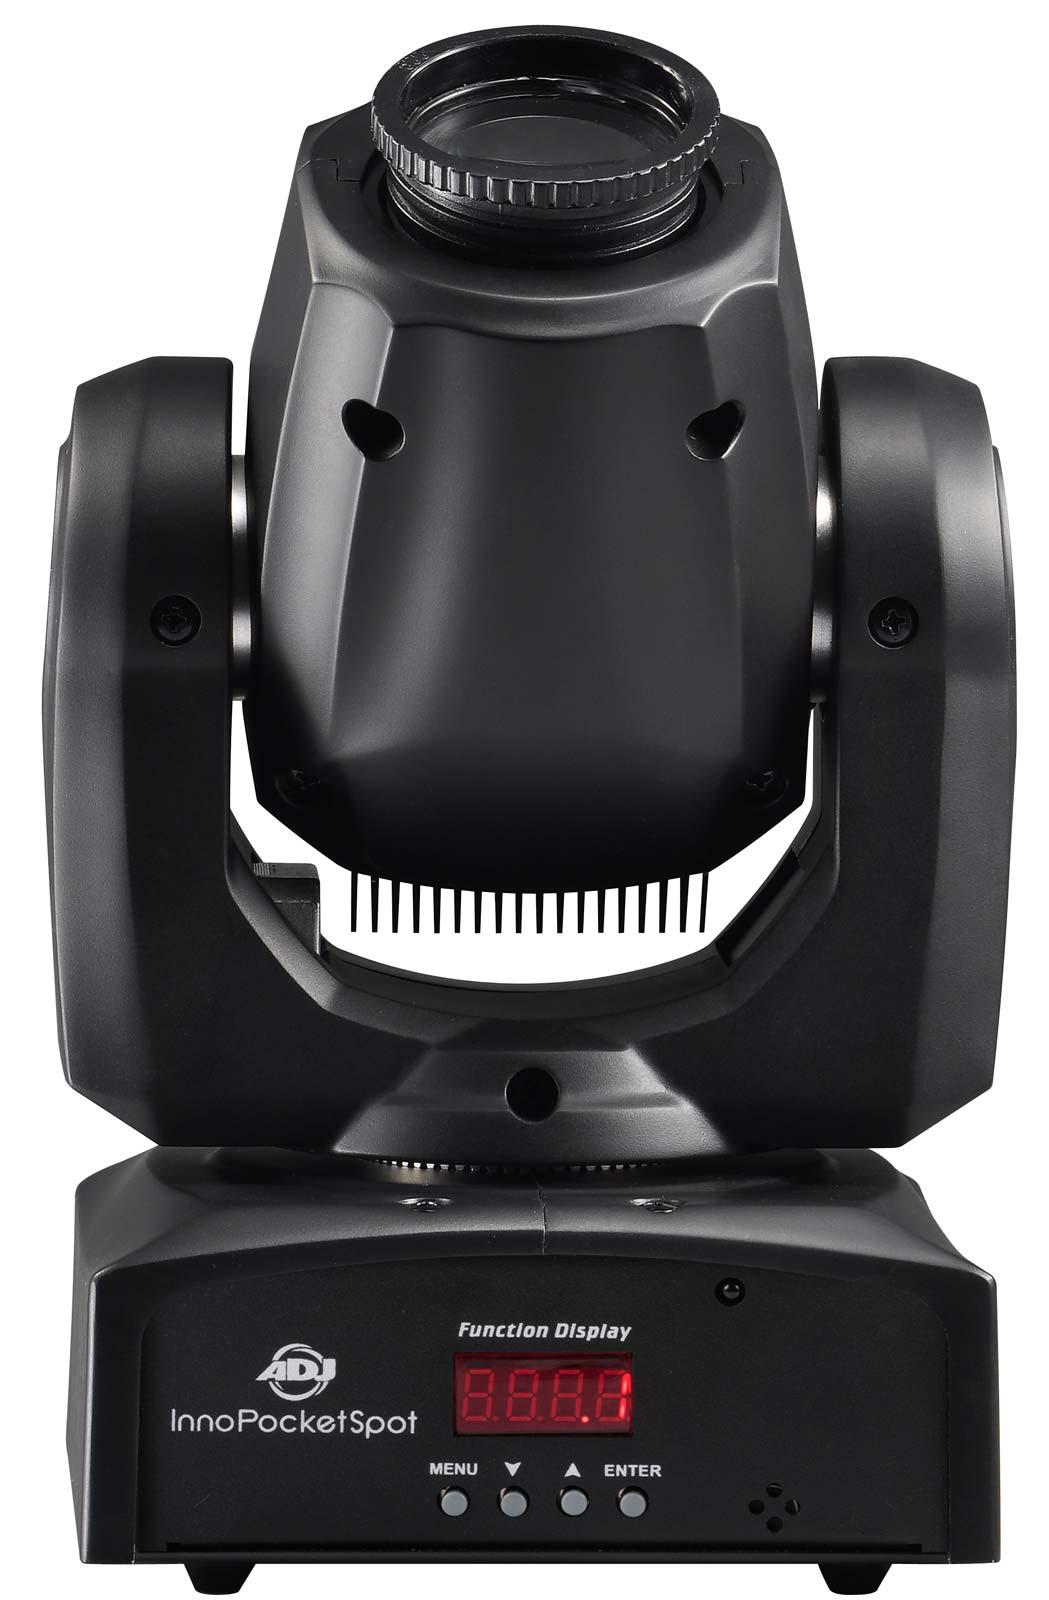 american dj inno pocket spot 12 watt led mini moving head. Black Bedroom Furniture Sets. Home Design Ideas